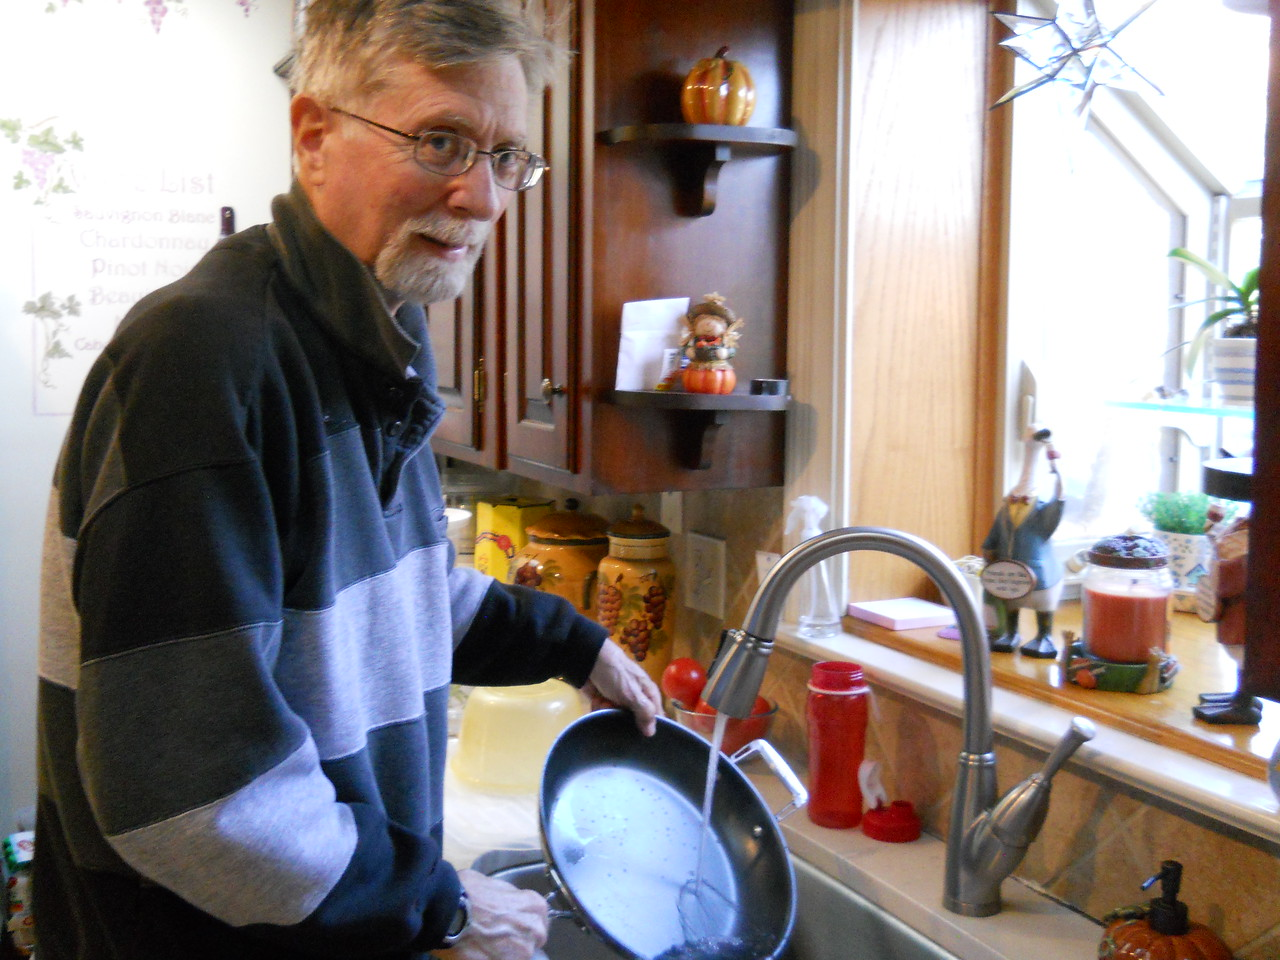 Dad helping in the kitchen